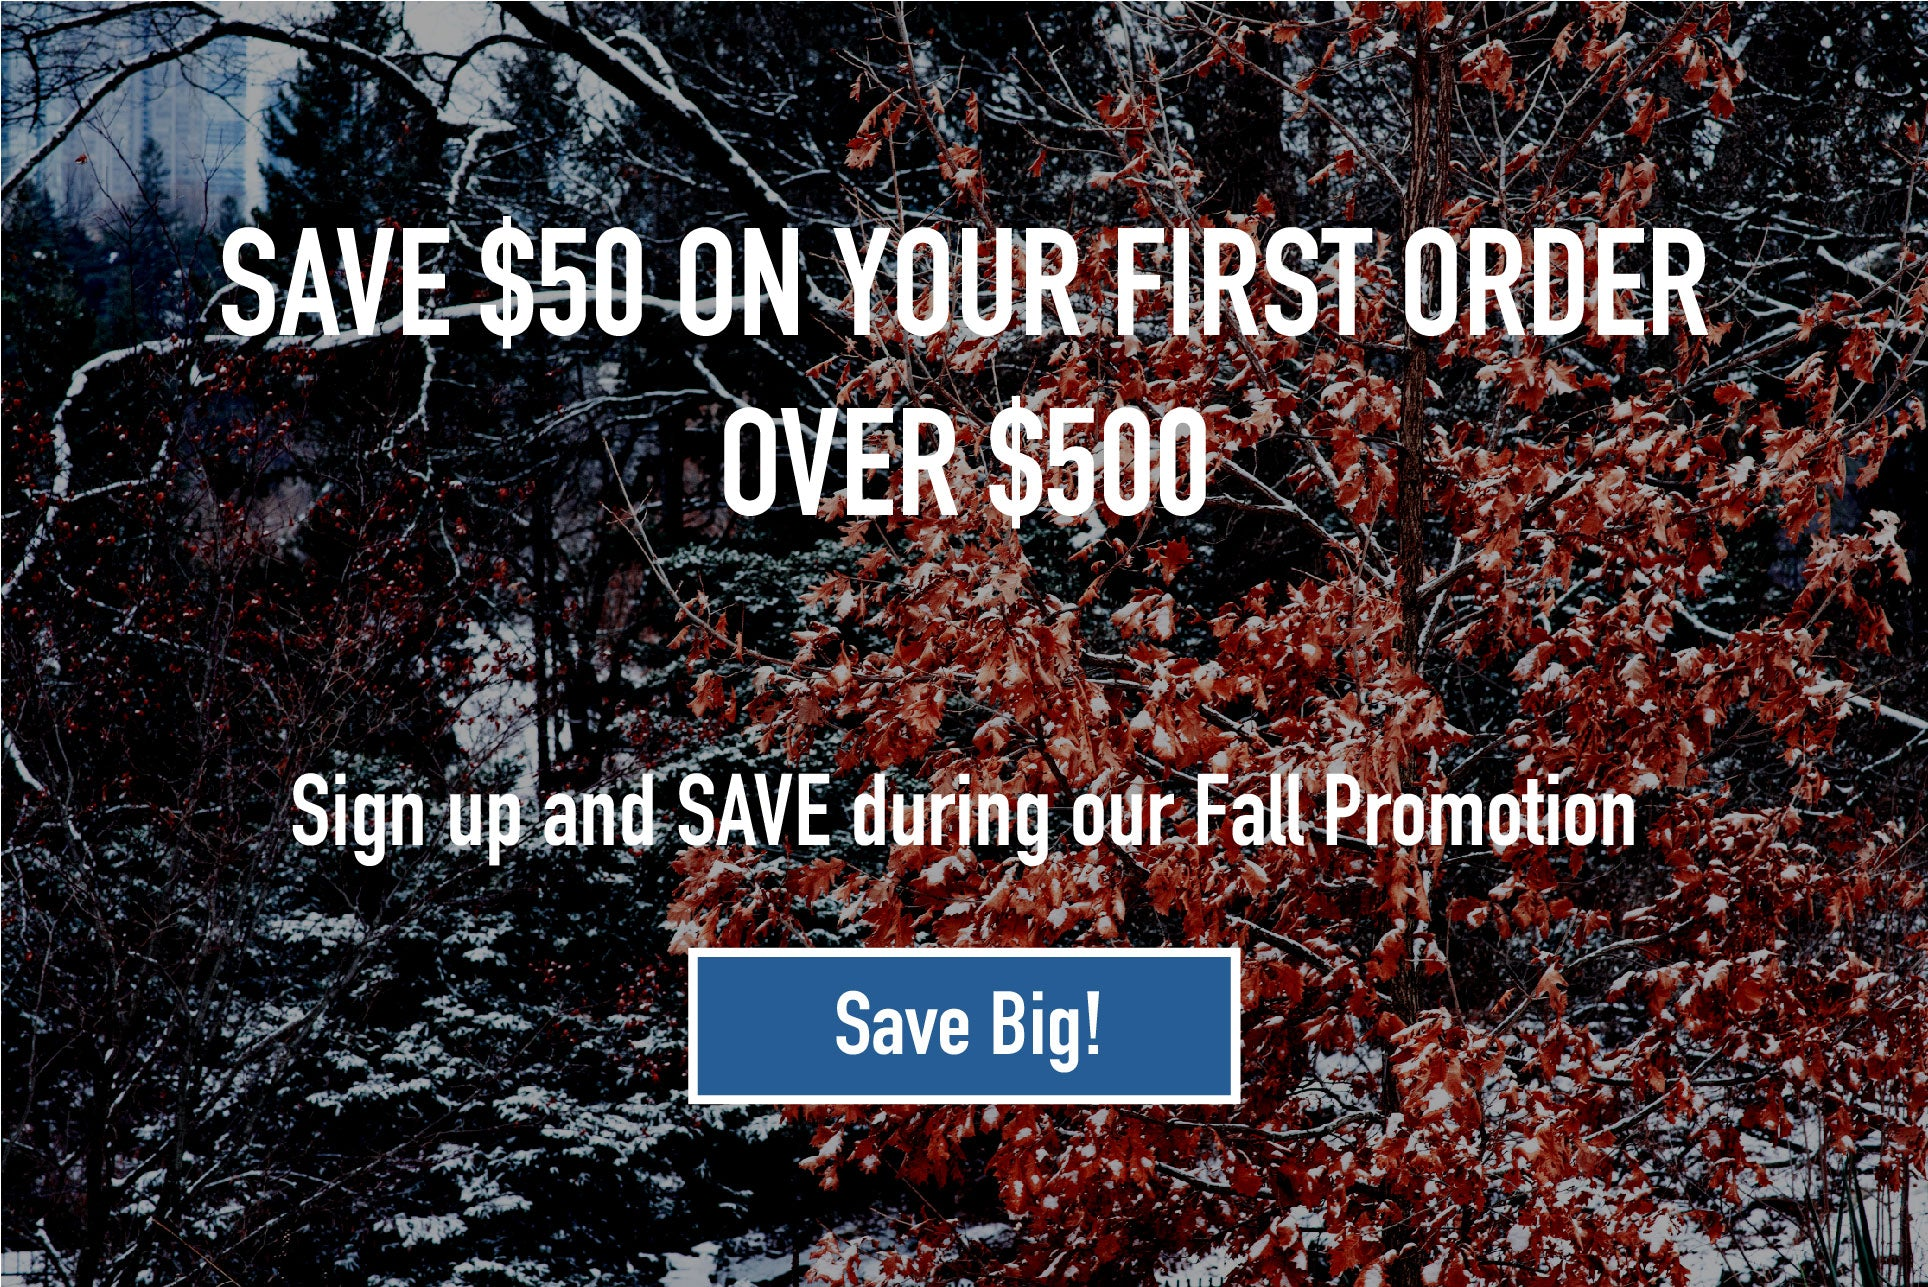 Subscribe to our email list and save $50 on your first order over $500